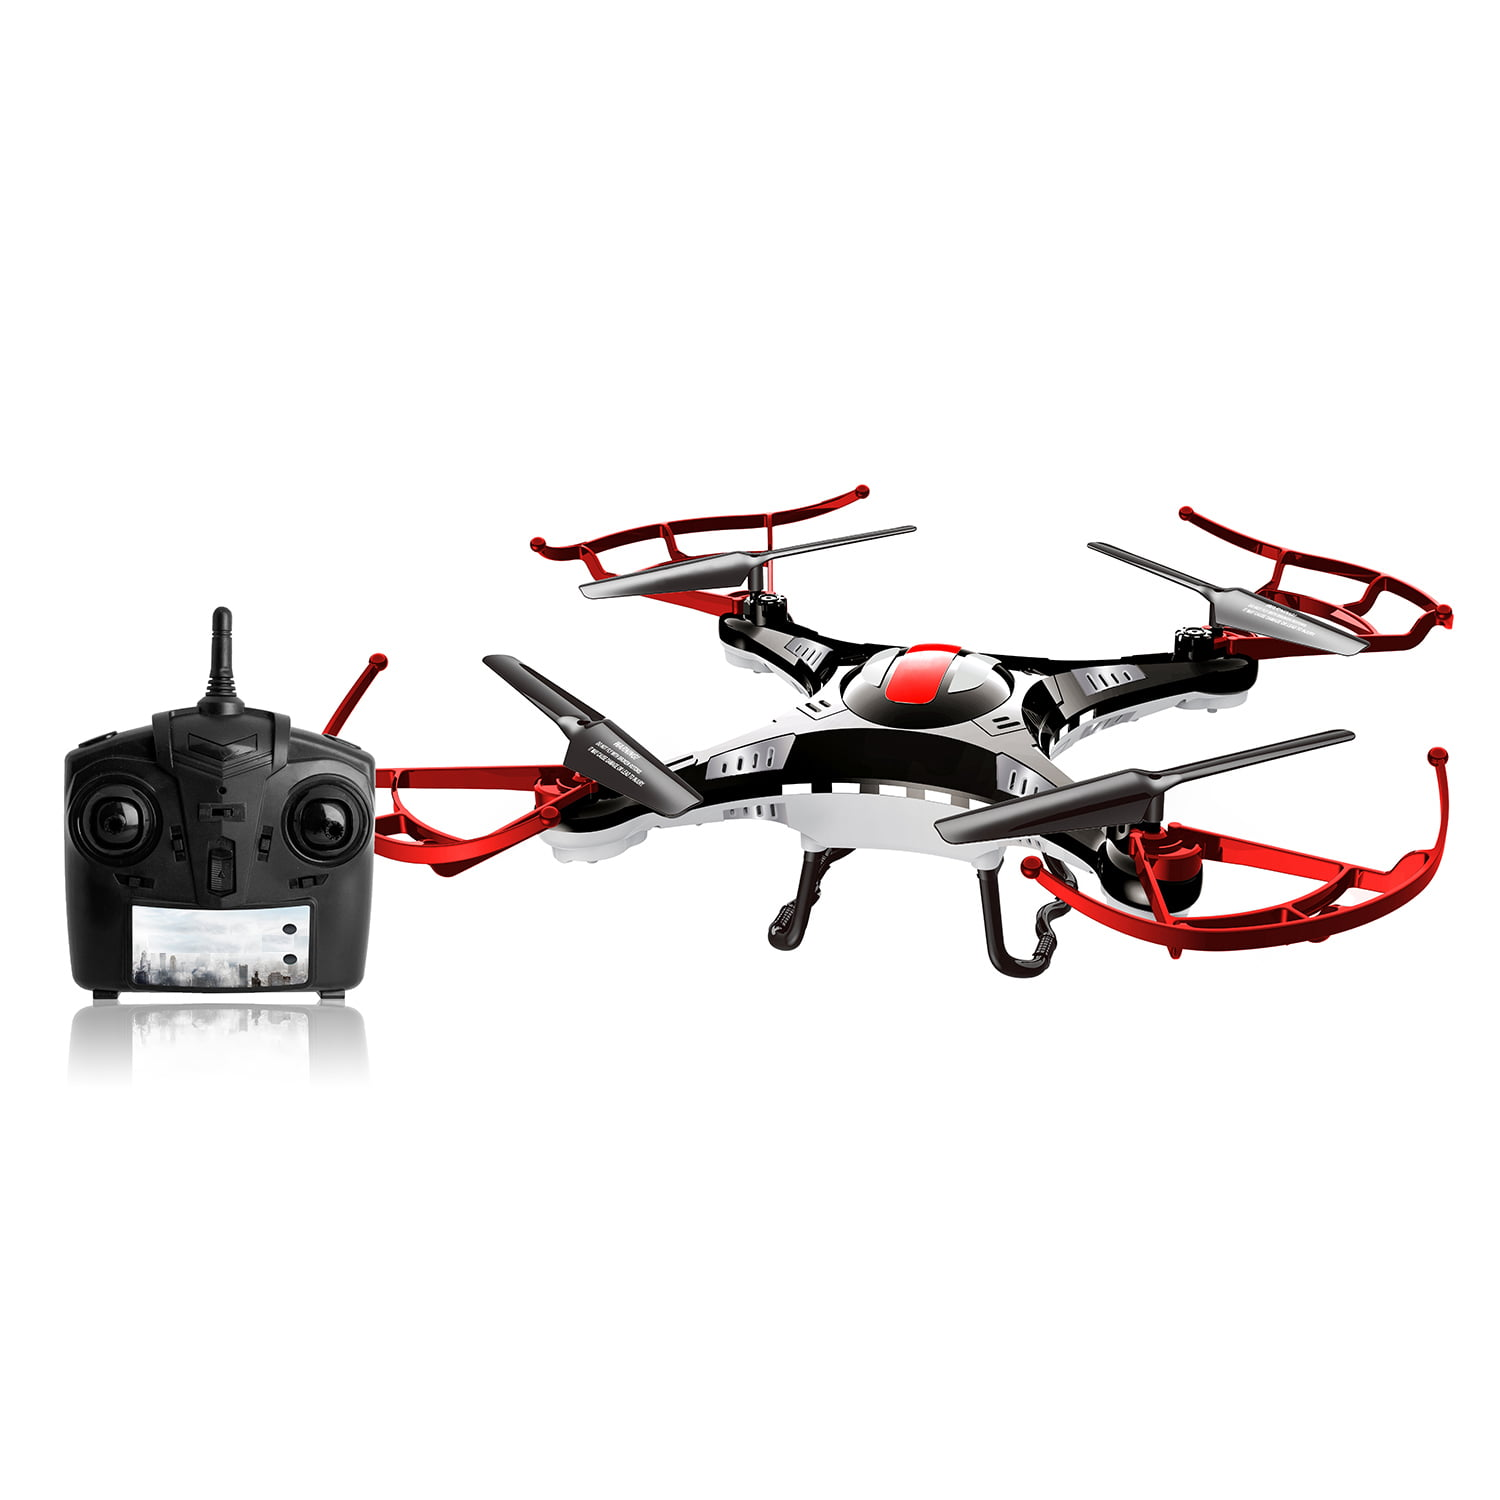 RC Quadcopter 2.4GHz 6-Axis Radio Control Flight Drone Video Photo Camera by Alta